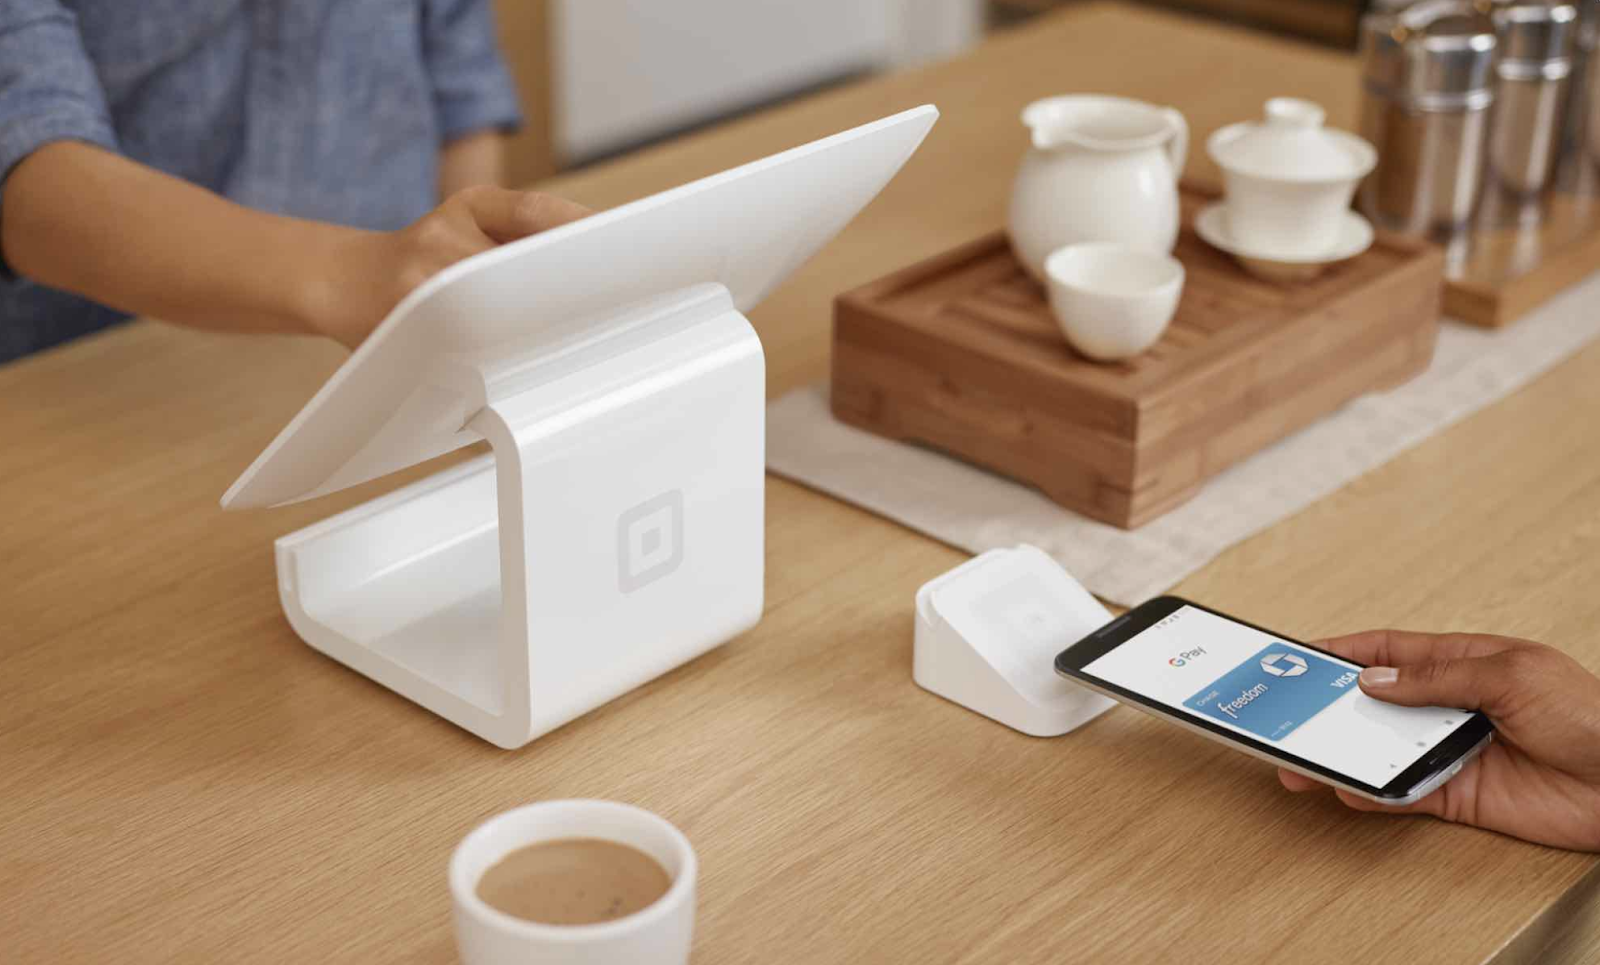 square point-of-sale mobile app scan